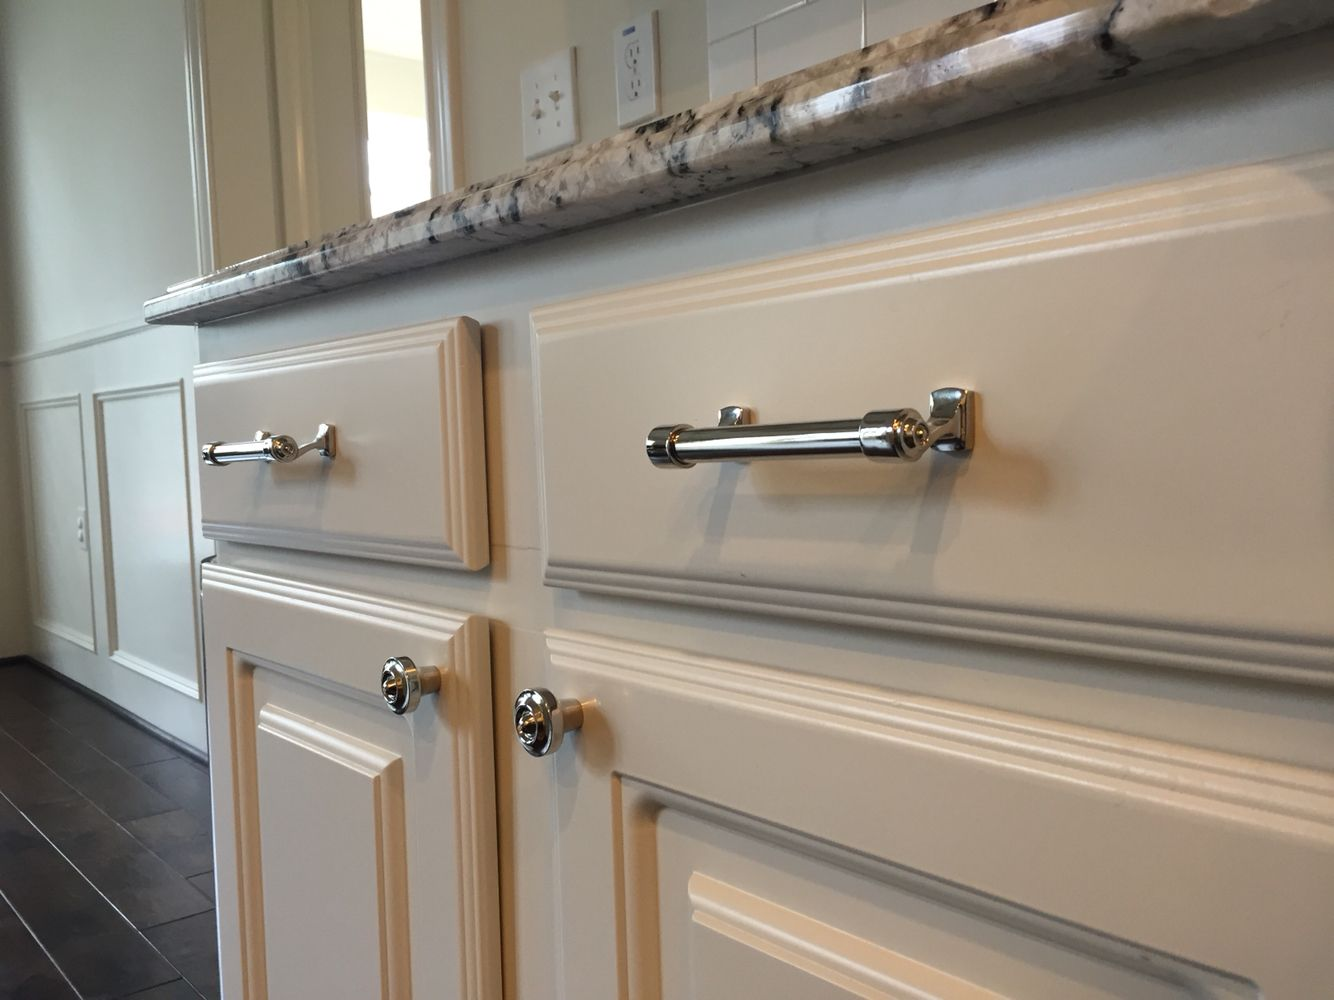 Restoration Hardware Kitchen Cabinet Pulls Kitchen Restoration Hardware Knobs And Pullscampaign Knob And .